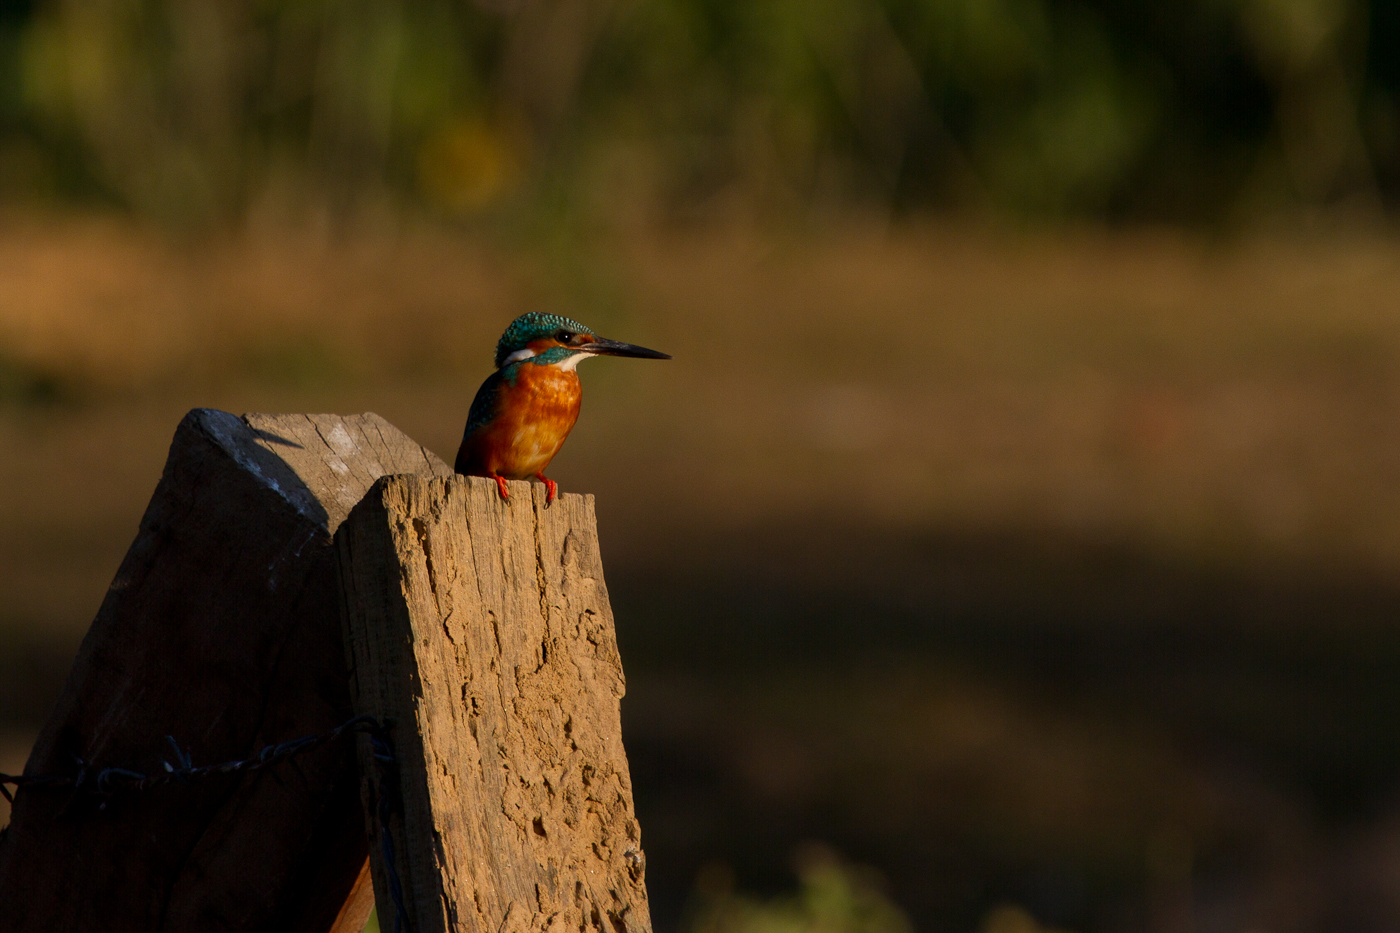 Common Kingfisher, Bardia National Park, Nepal, Nov. 2013